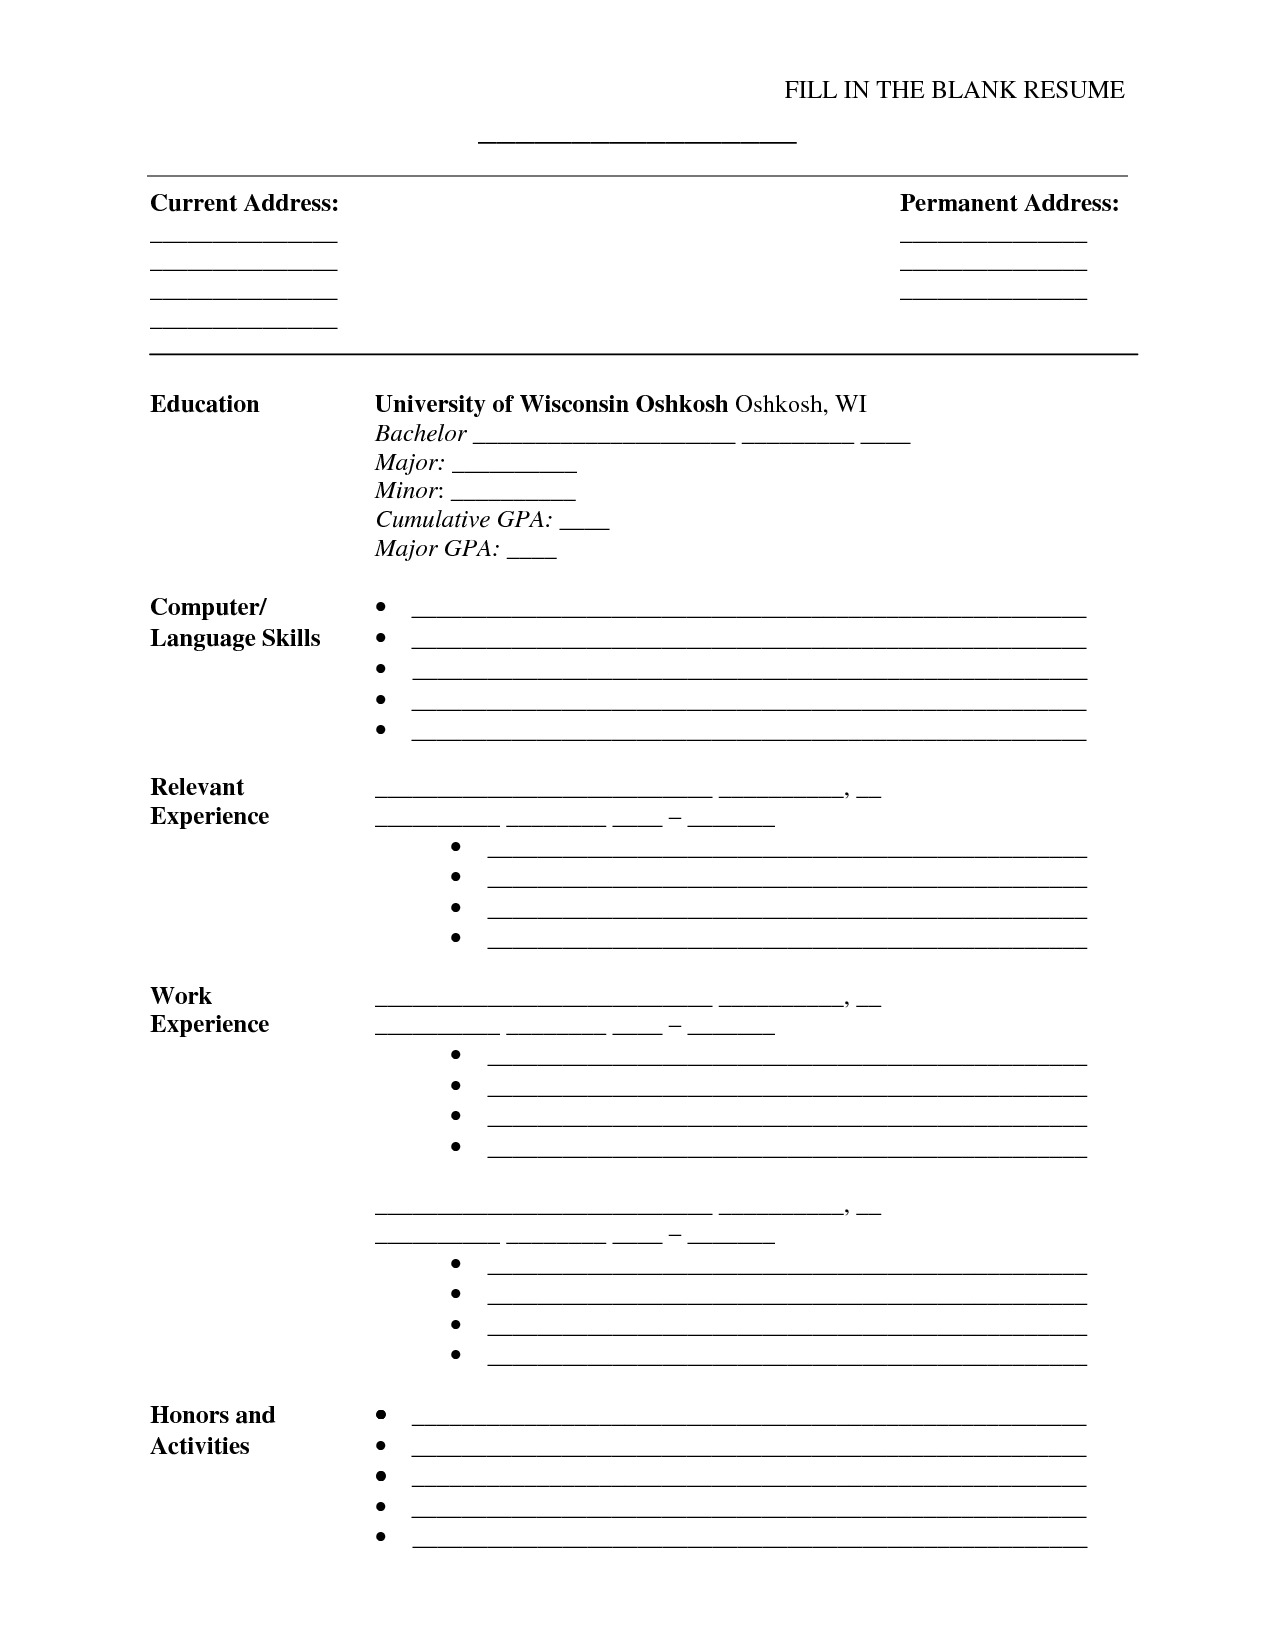 fill in blank resume form - Blank Resume Template